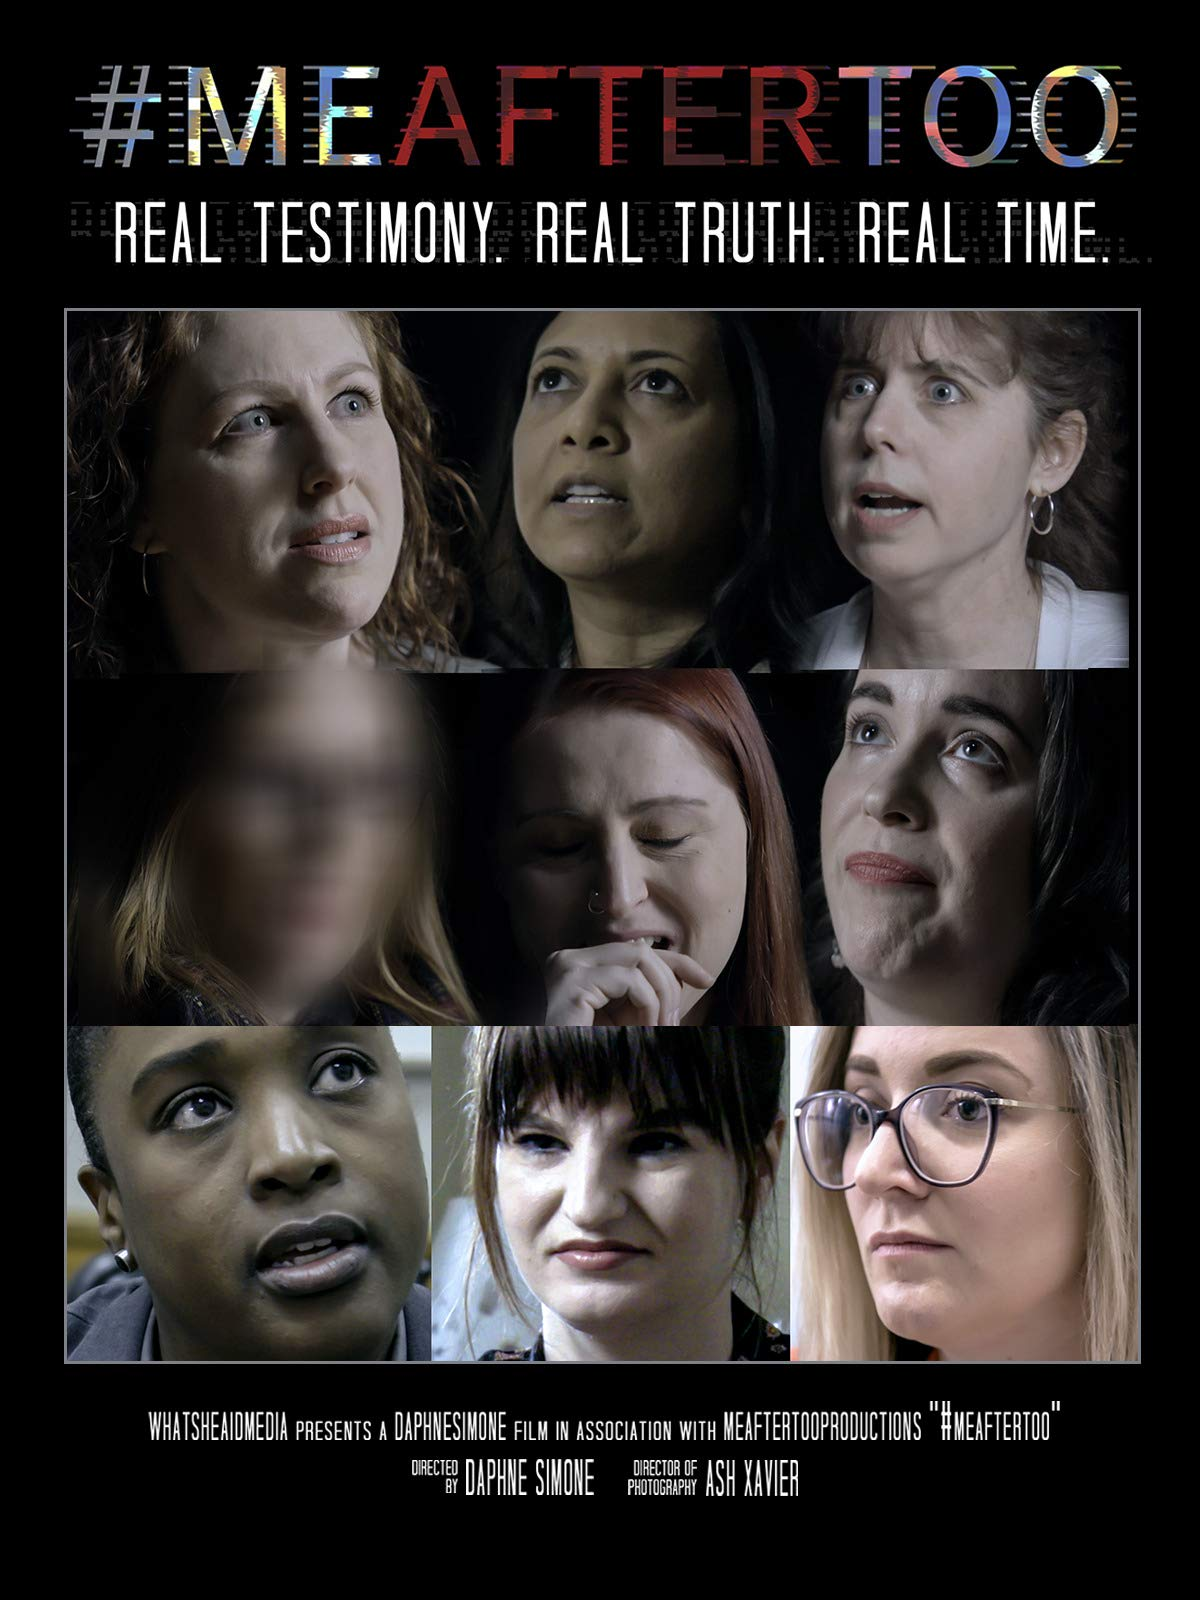 #MeAfterToo: Real Testimony. Real Truth. Real Time.